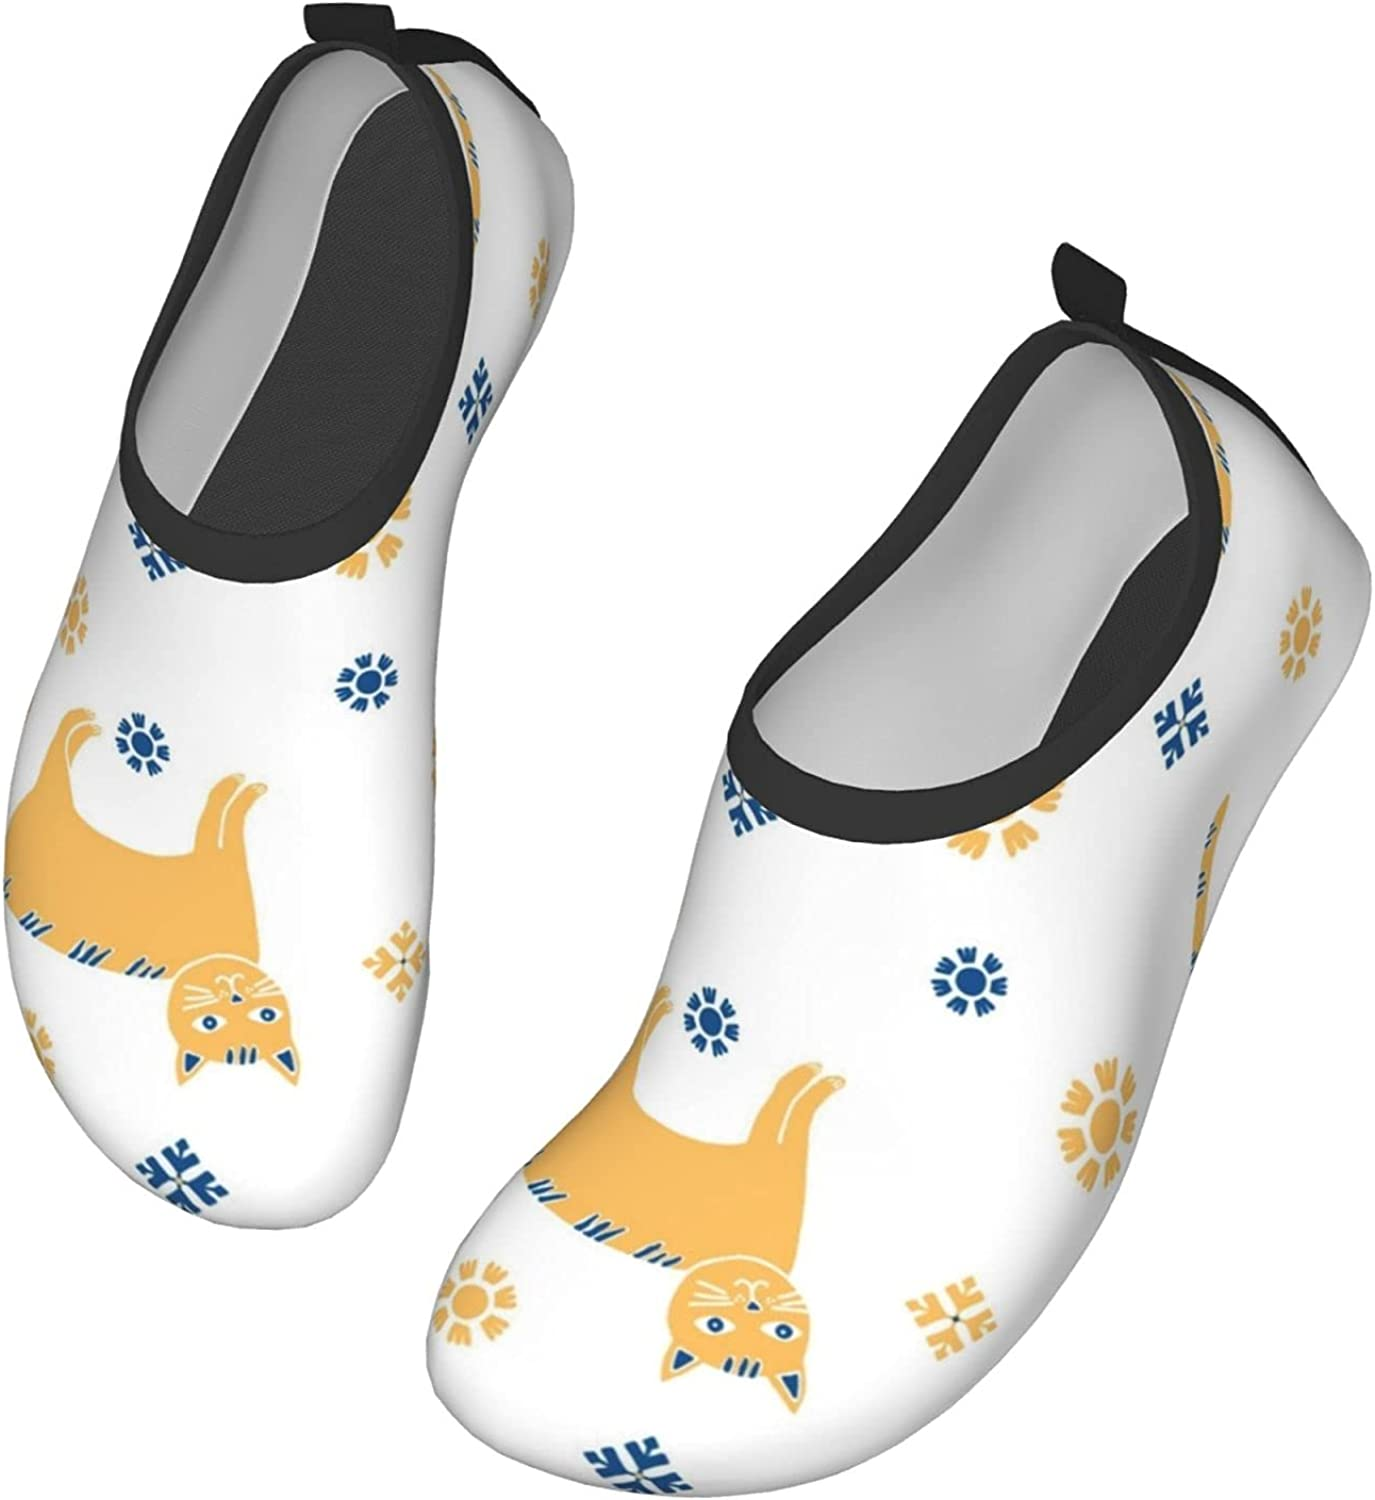 Ethnic Style with Cats and Sun Men's Women's Water Shoes Barefoot Quick Dry Slip-on Aqua Socks for Yoga Beach Sports Swim surf